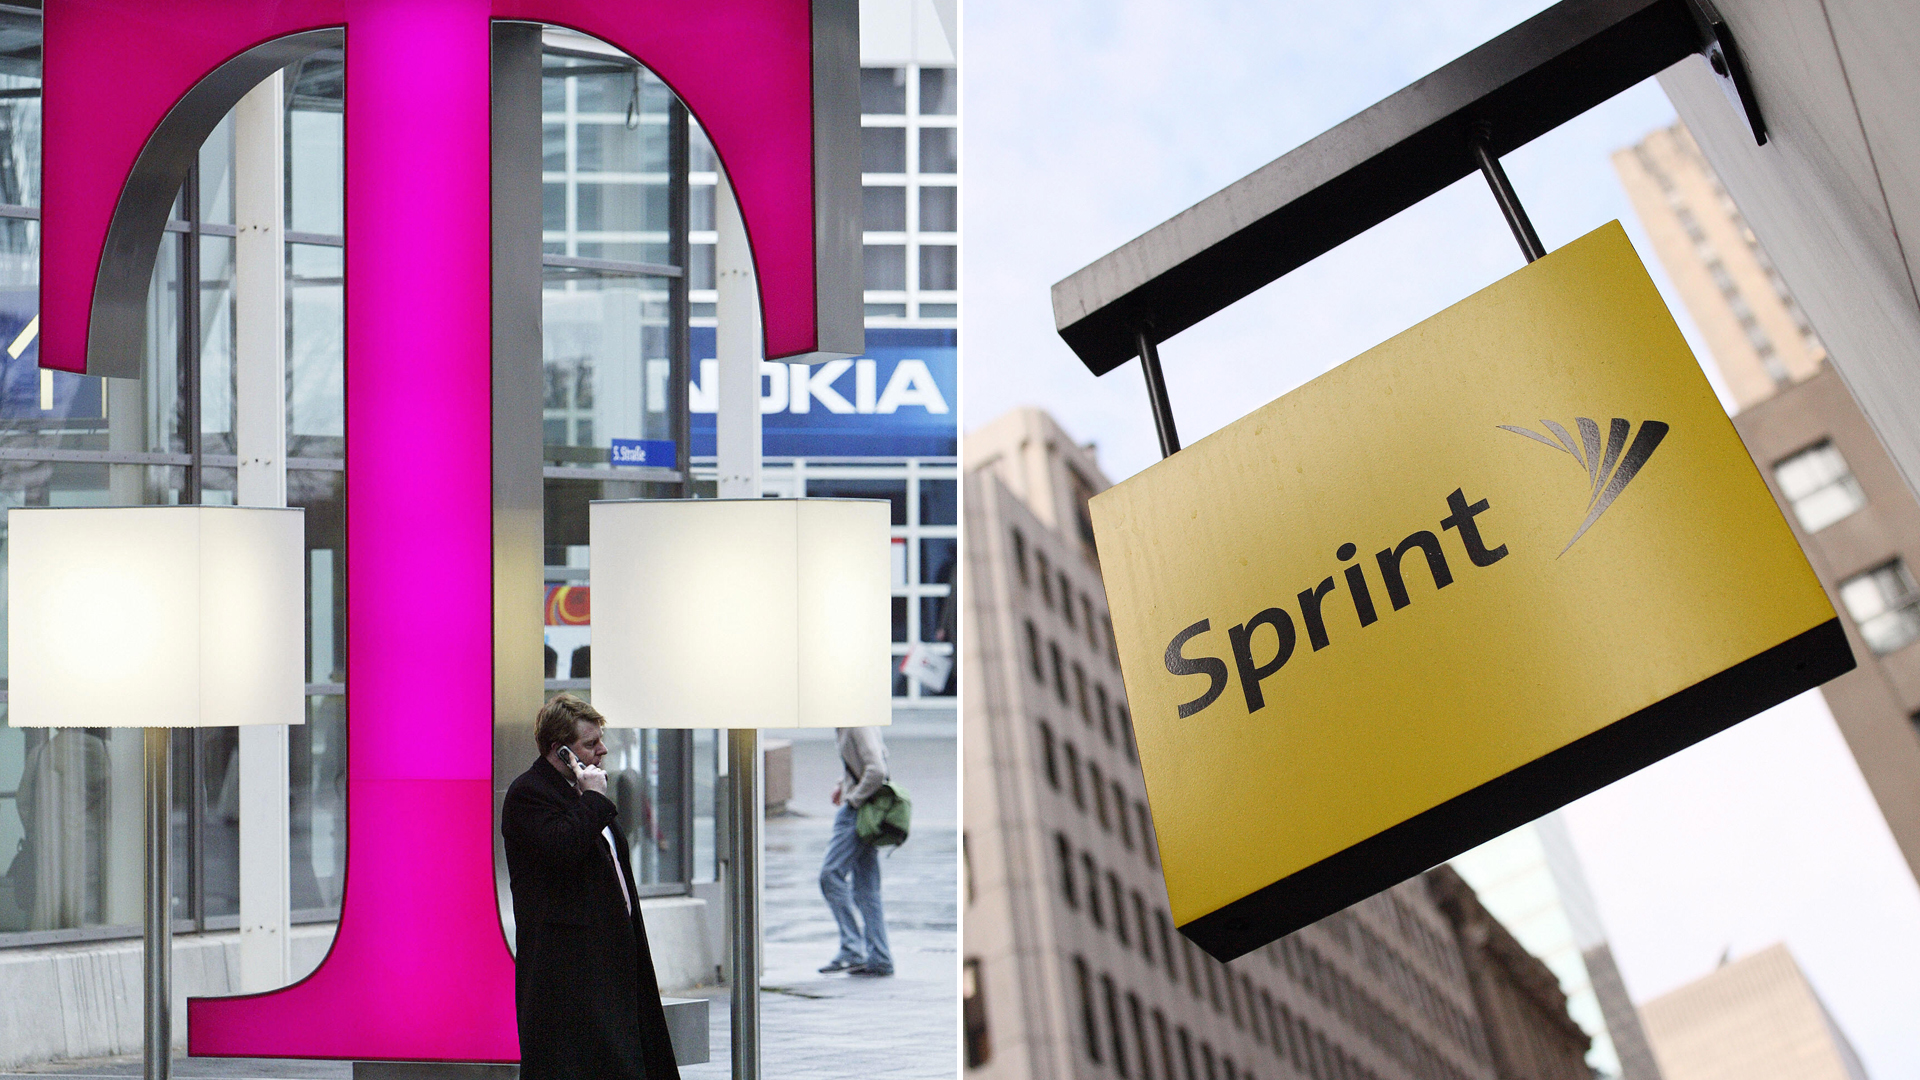 The T-Mobile and Sprint logos appear in file photos. (Credit: Getty Images)